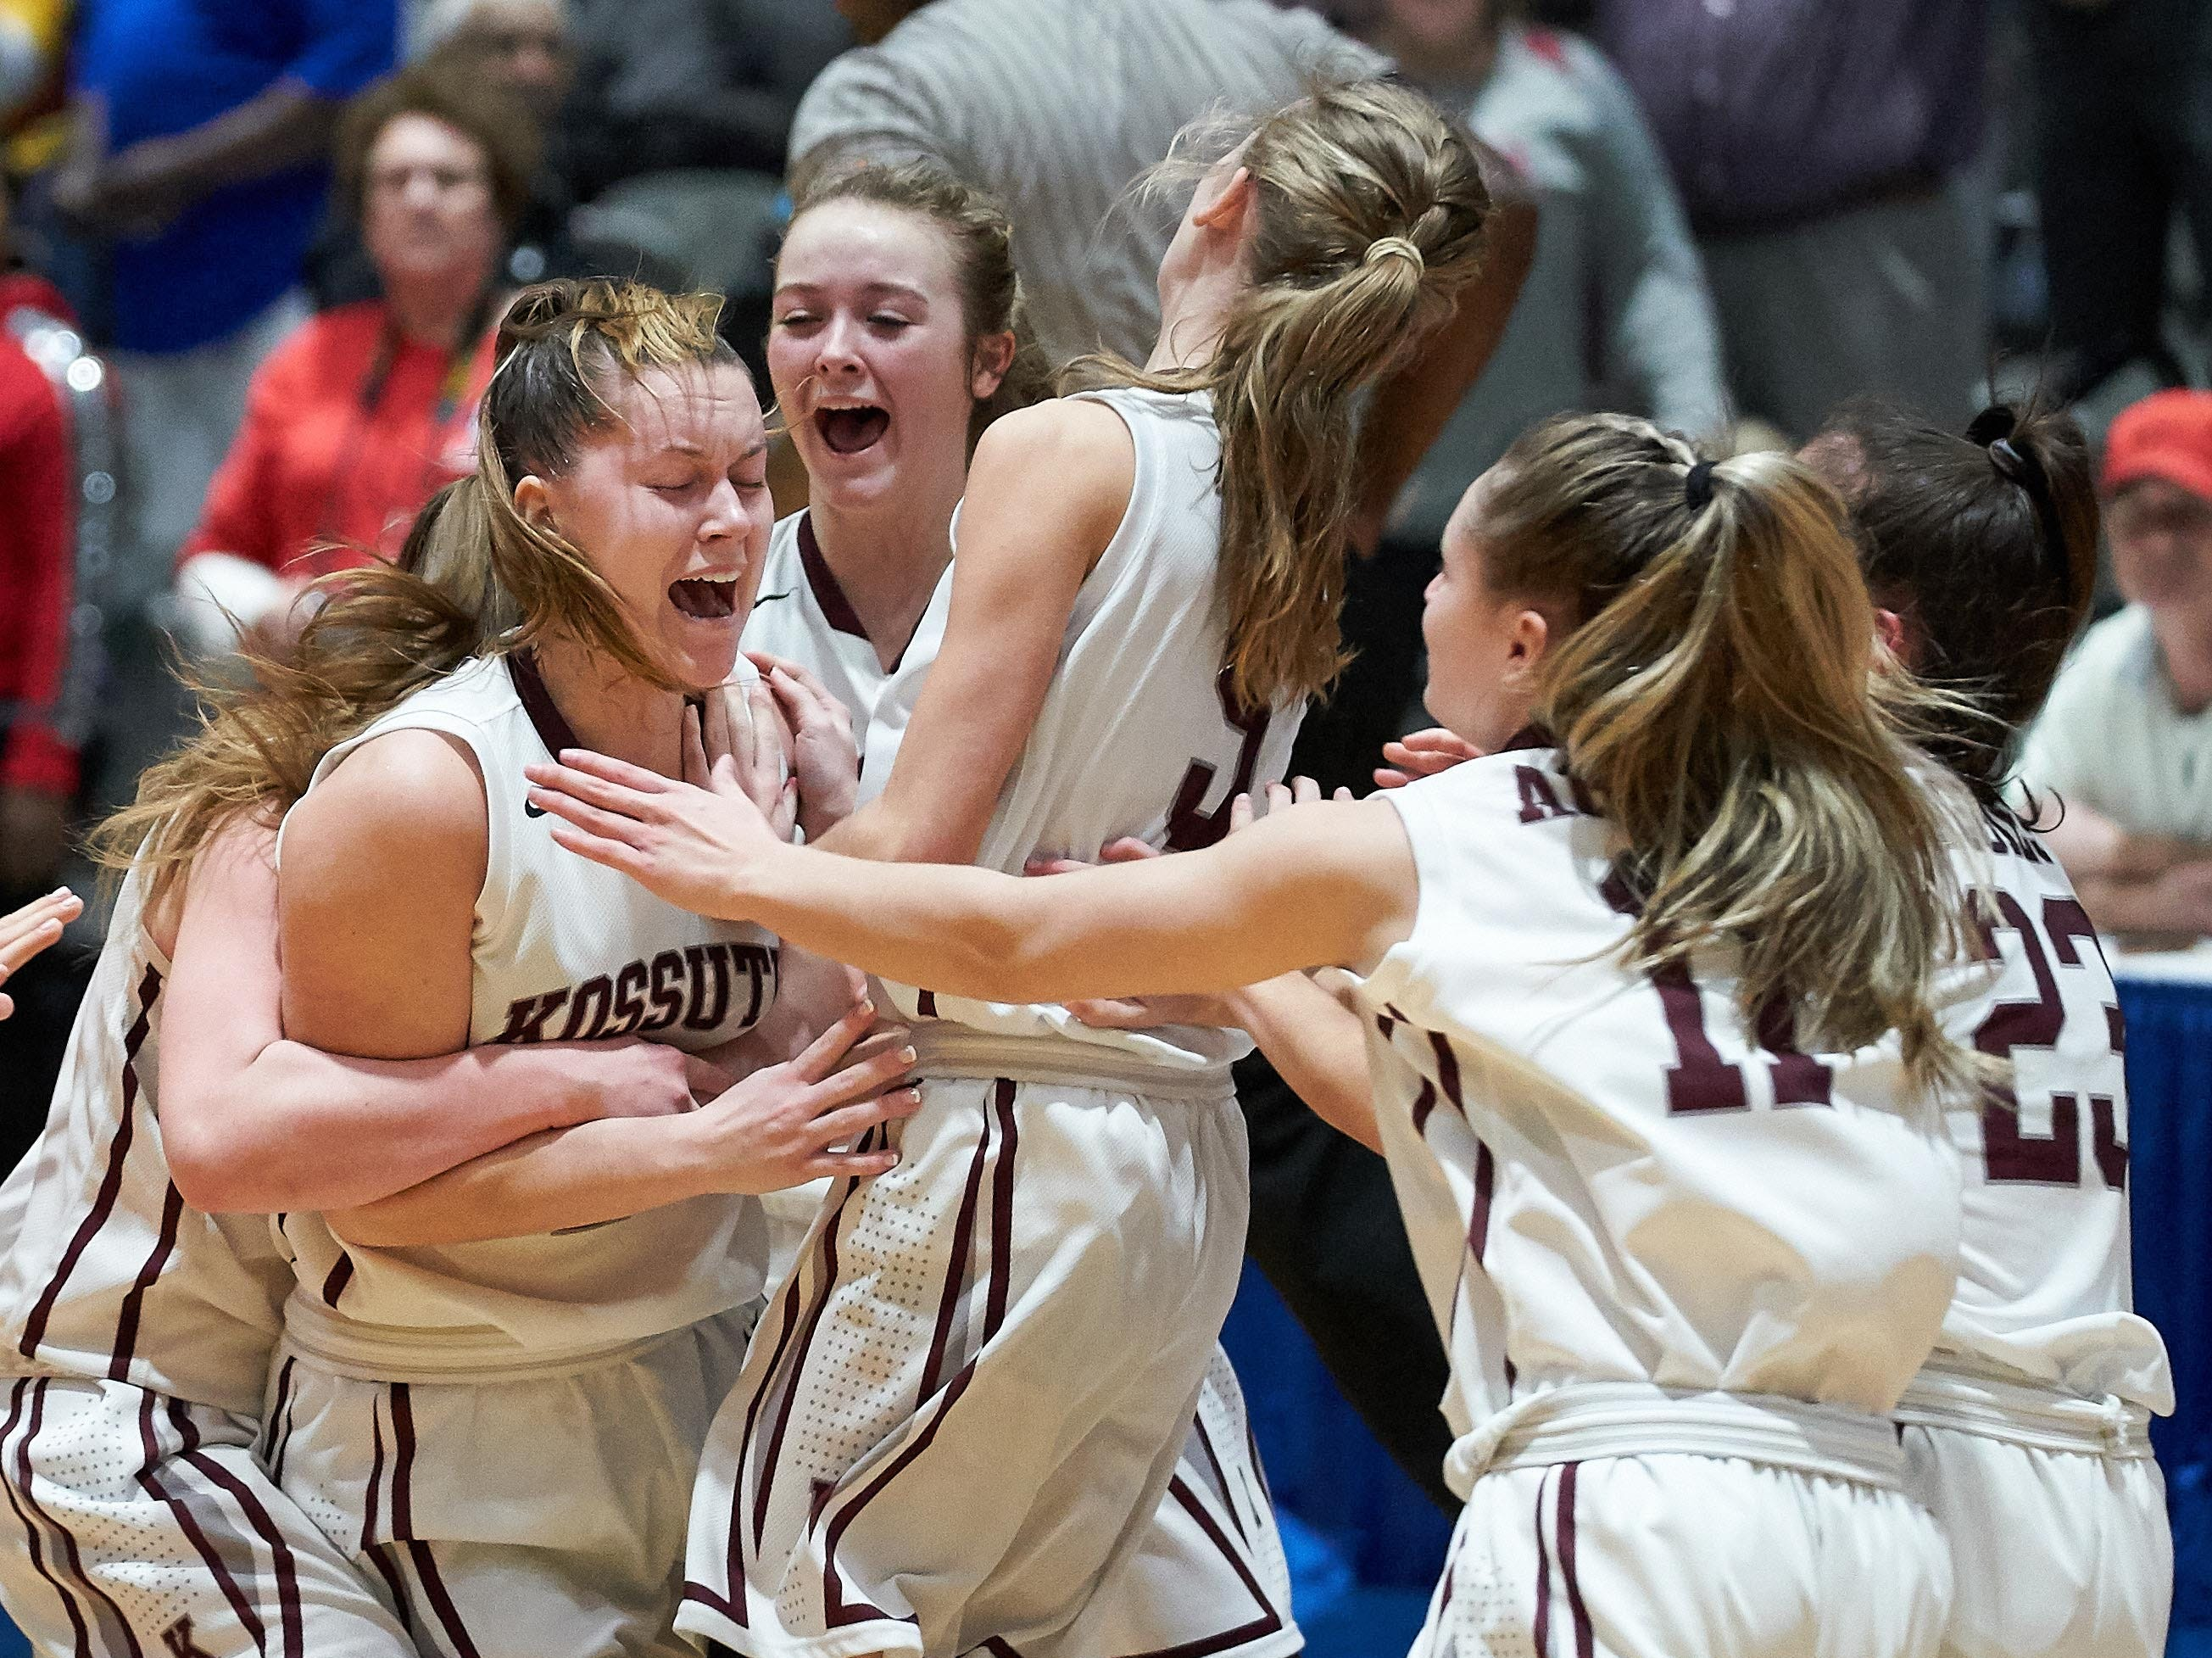 Kossuth players celebrate following their 48-44 win over Belmont during the MHSAA 3A Girls Basketball Championship Finals held at the Mississippi Coliseum in Jackson, MS, Saturday March 9th, 2019.(Bob Smith)